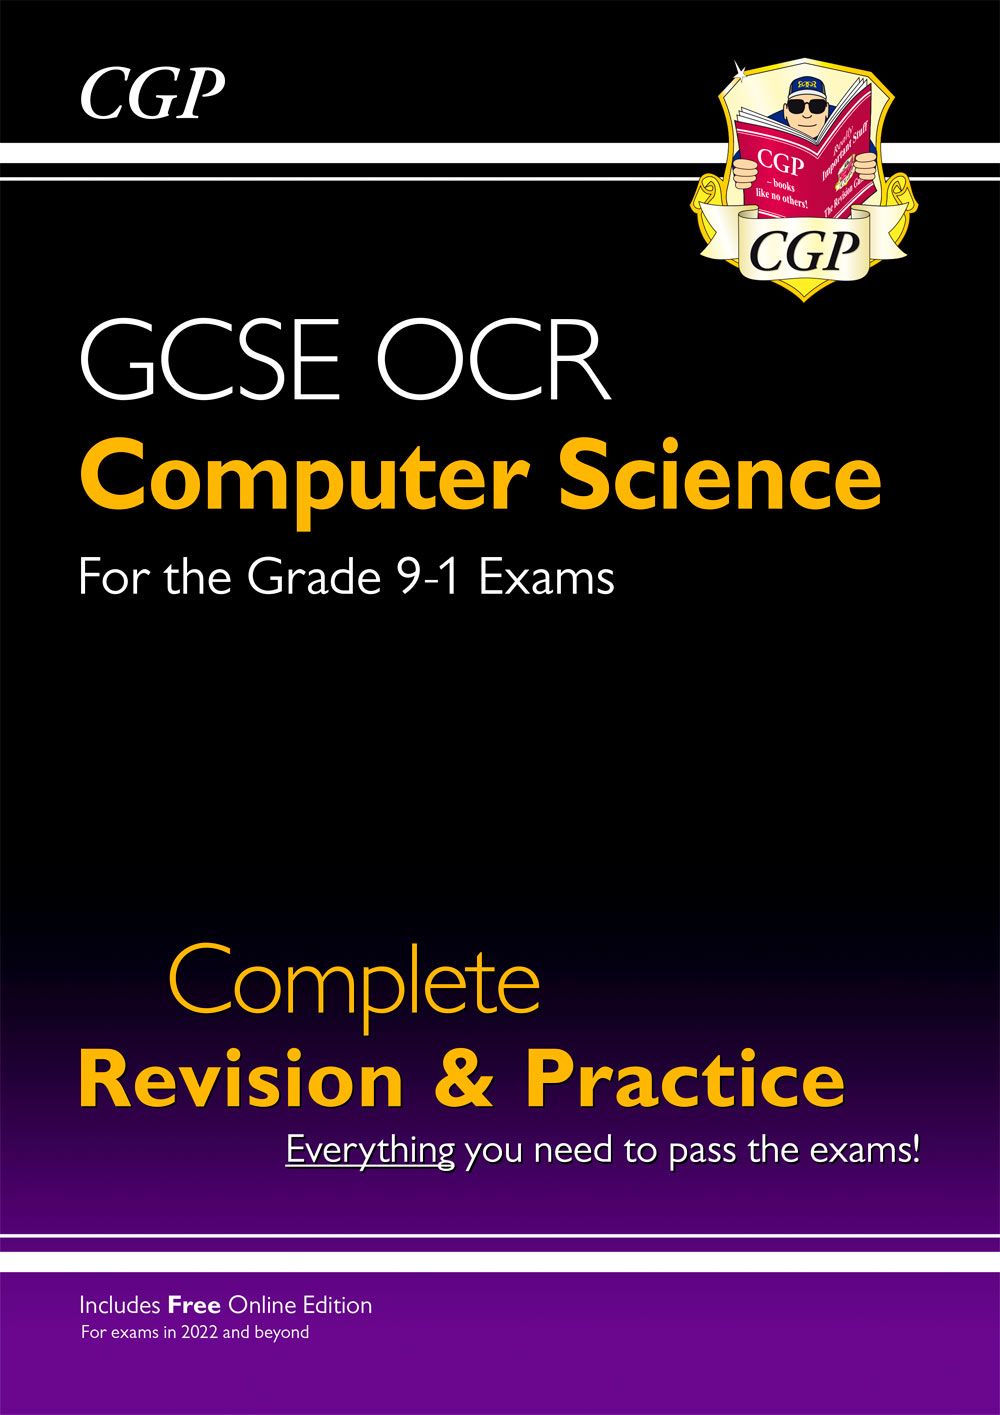 COS42 - New GCSE Computer Science OCR Complete Revision & Practice - for exams in 2022 and beyond